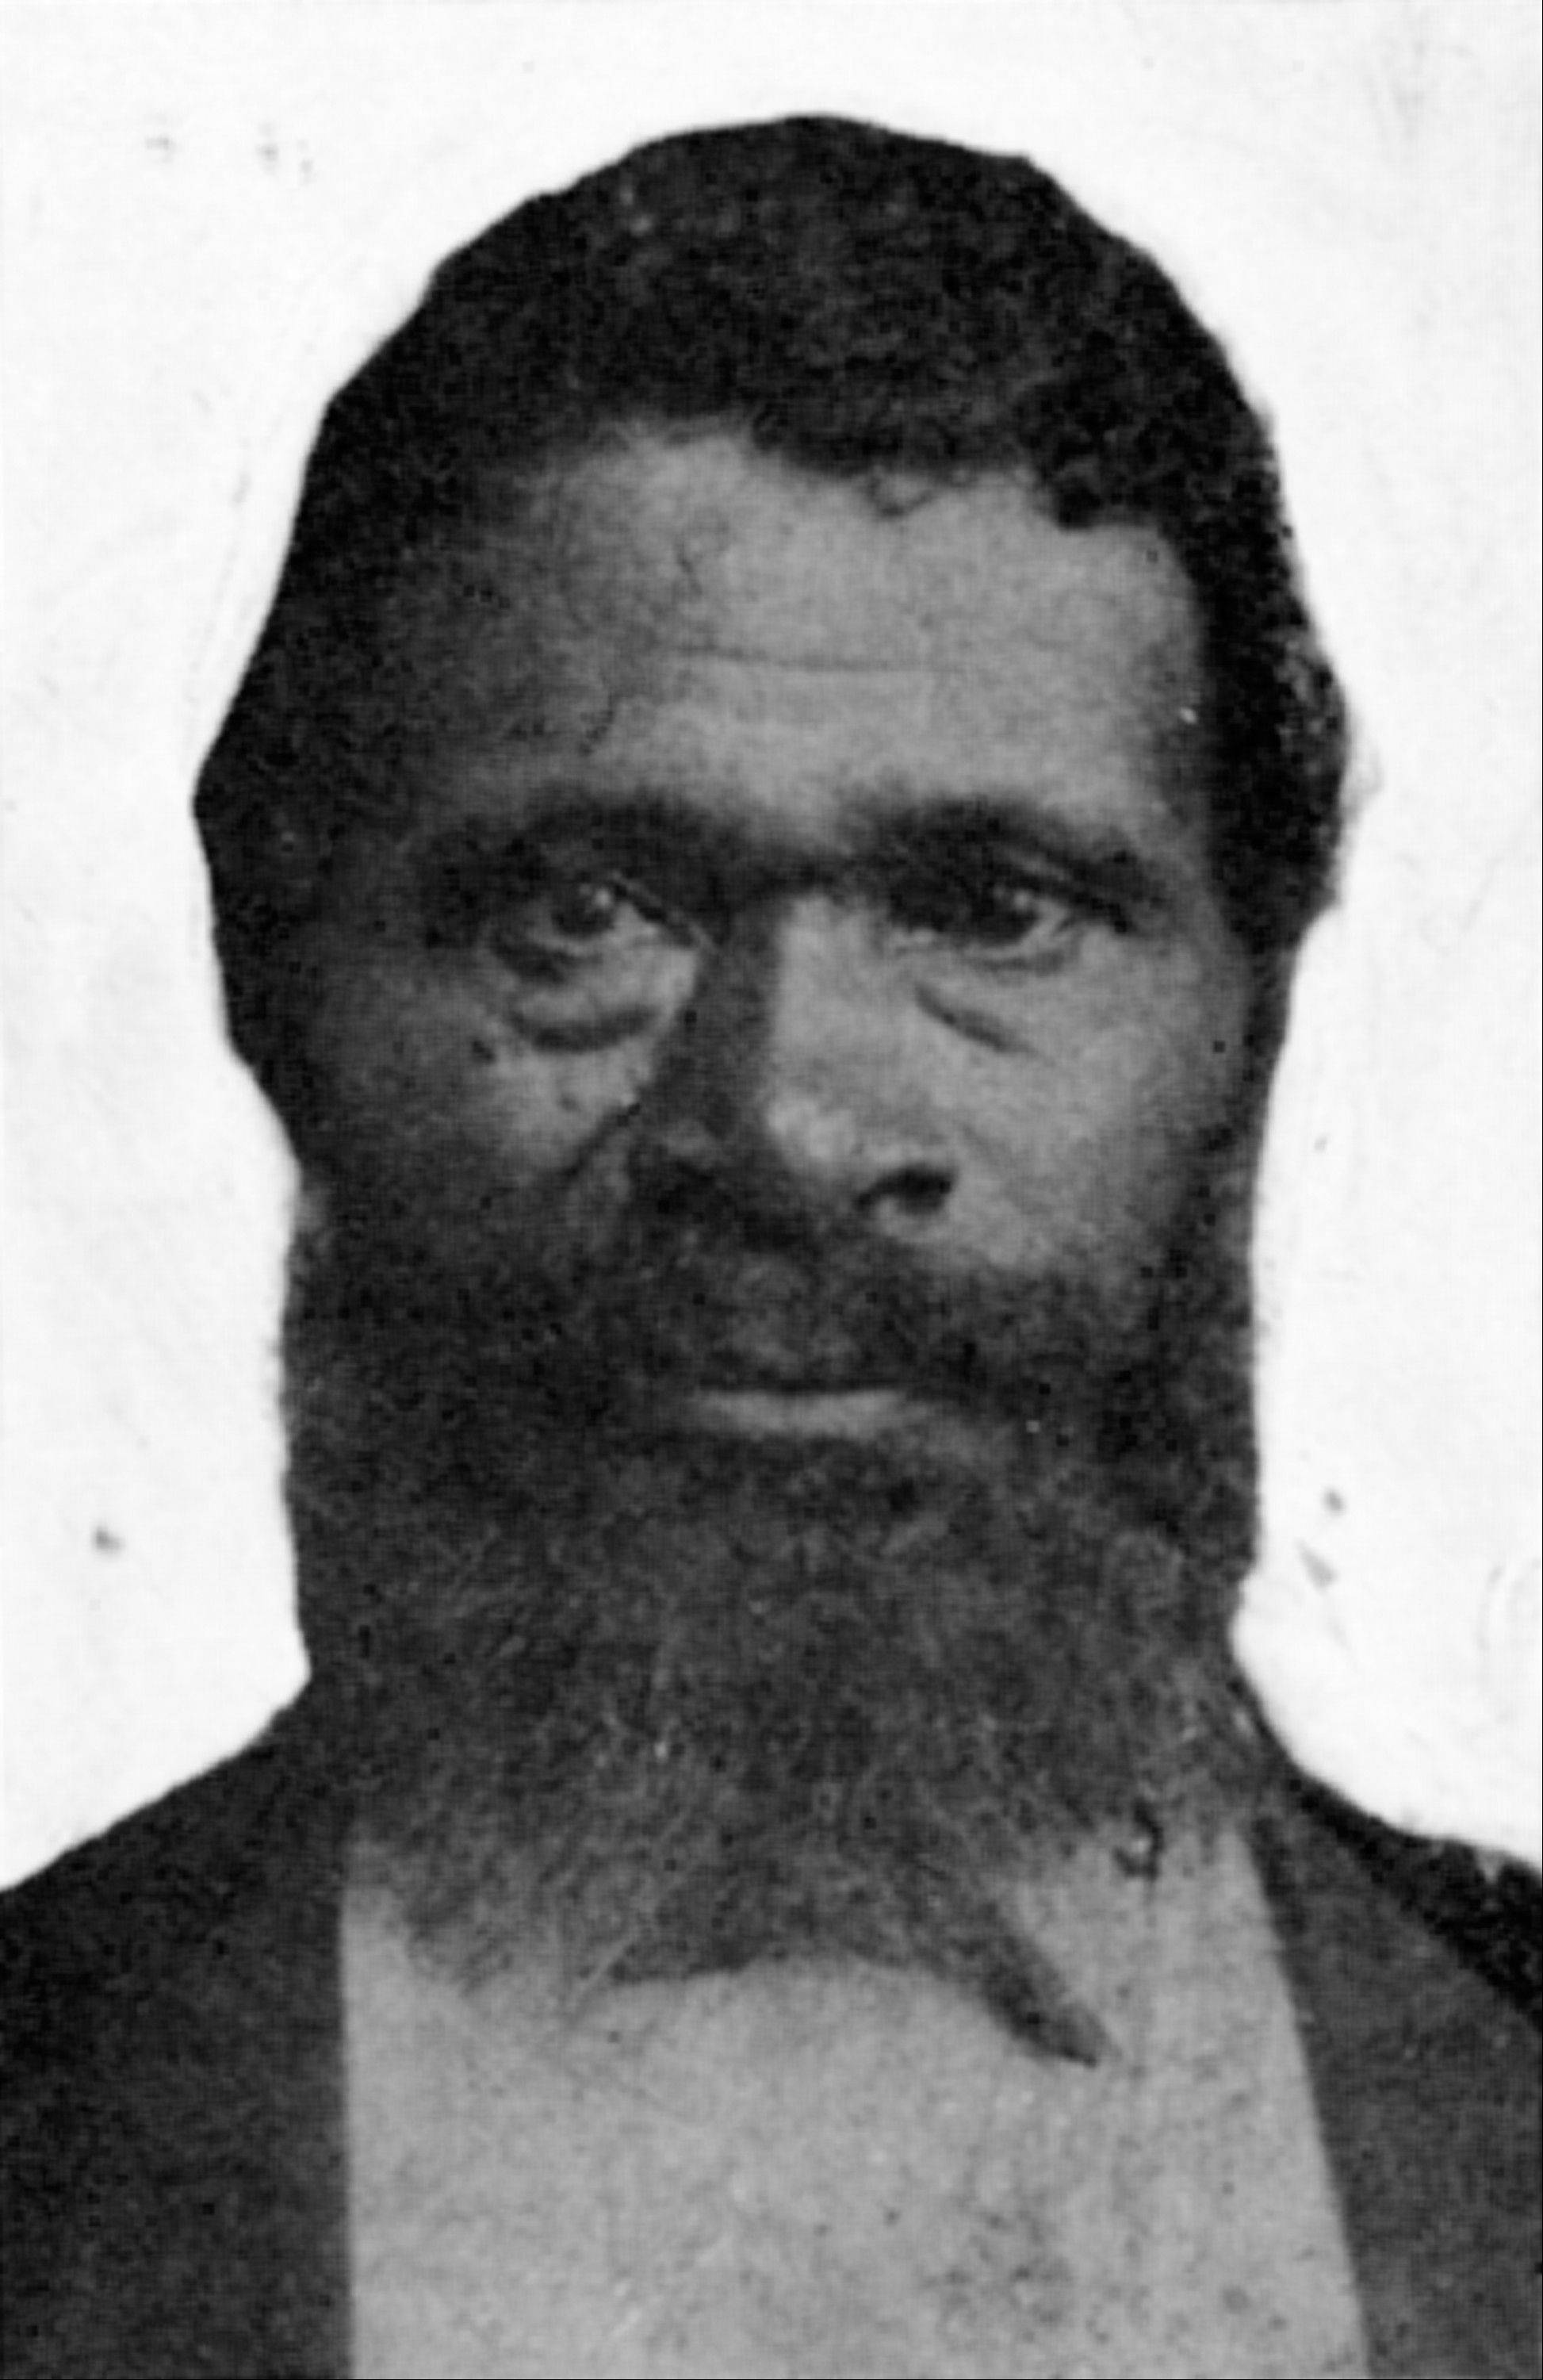 Jordon Anderson, above, was a former slave who was freed from a Tennessee plantation by Union troops in 1864 and spent his remaining 40 years in Ohio. He lived quietly and likely would have been forgotten if not for a remarkable letter to his former master published in a Cincinnati newspaper shortly after the Civil War.